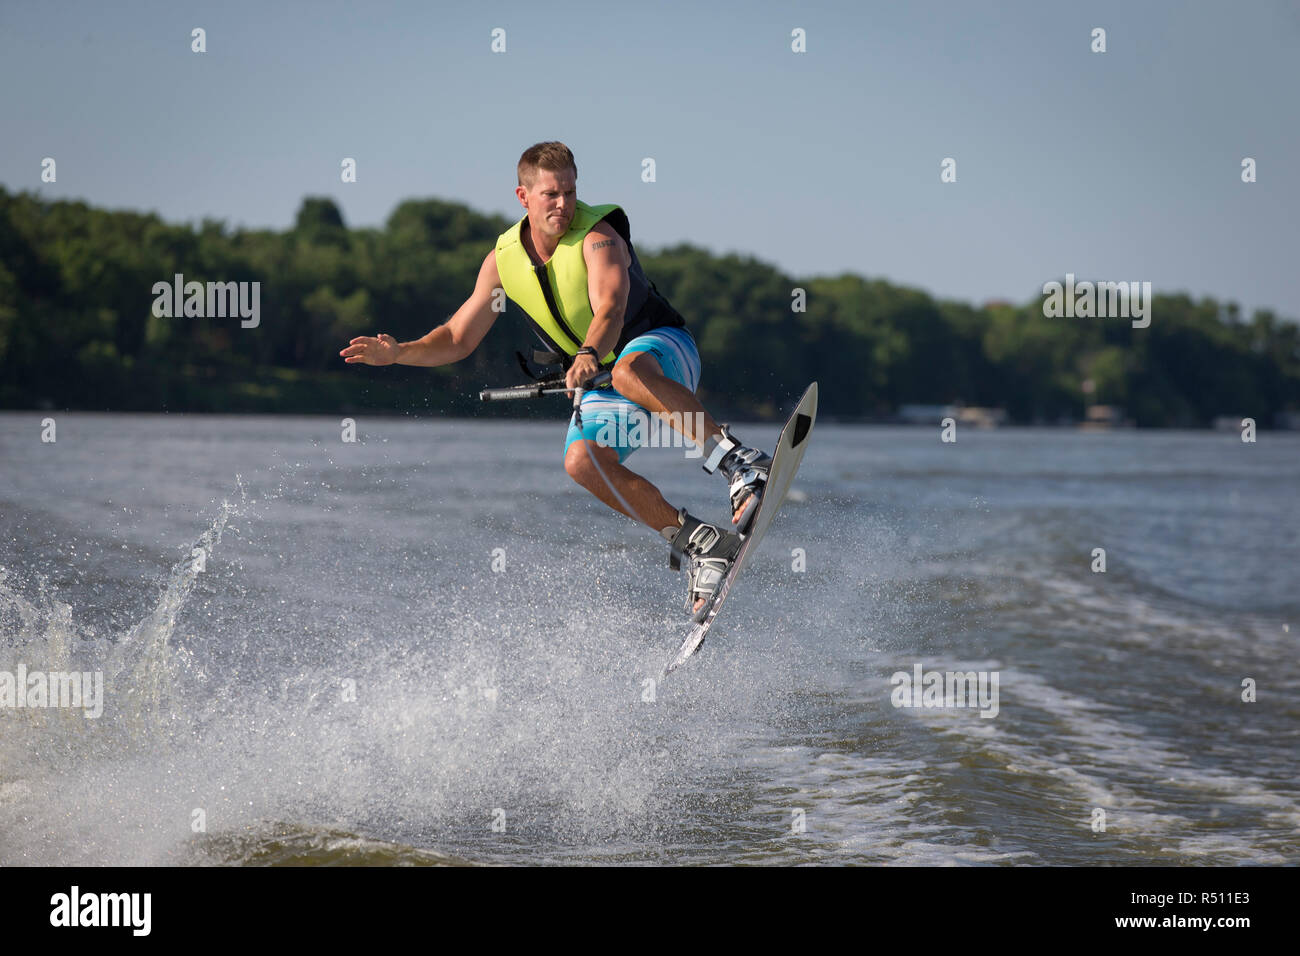 Photograph of man in mid-air while wakeboarding on river - Stock Image